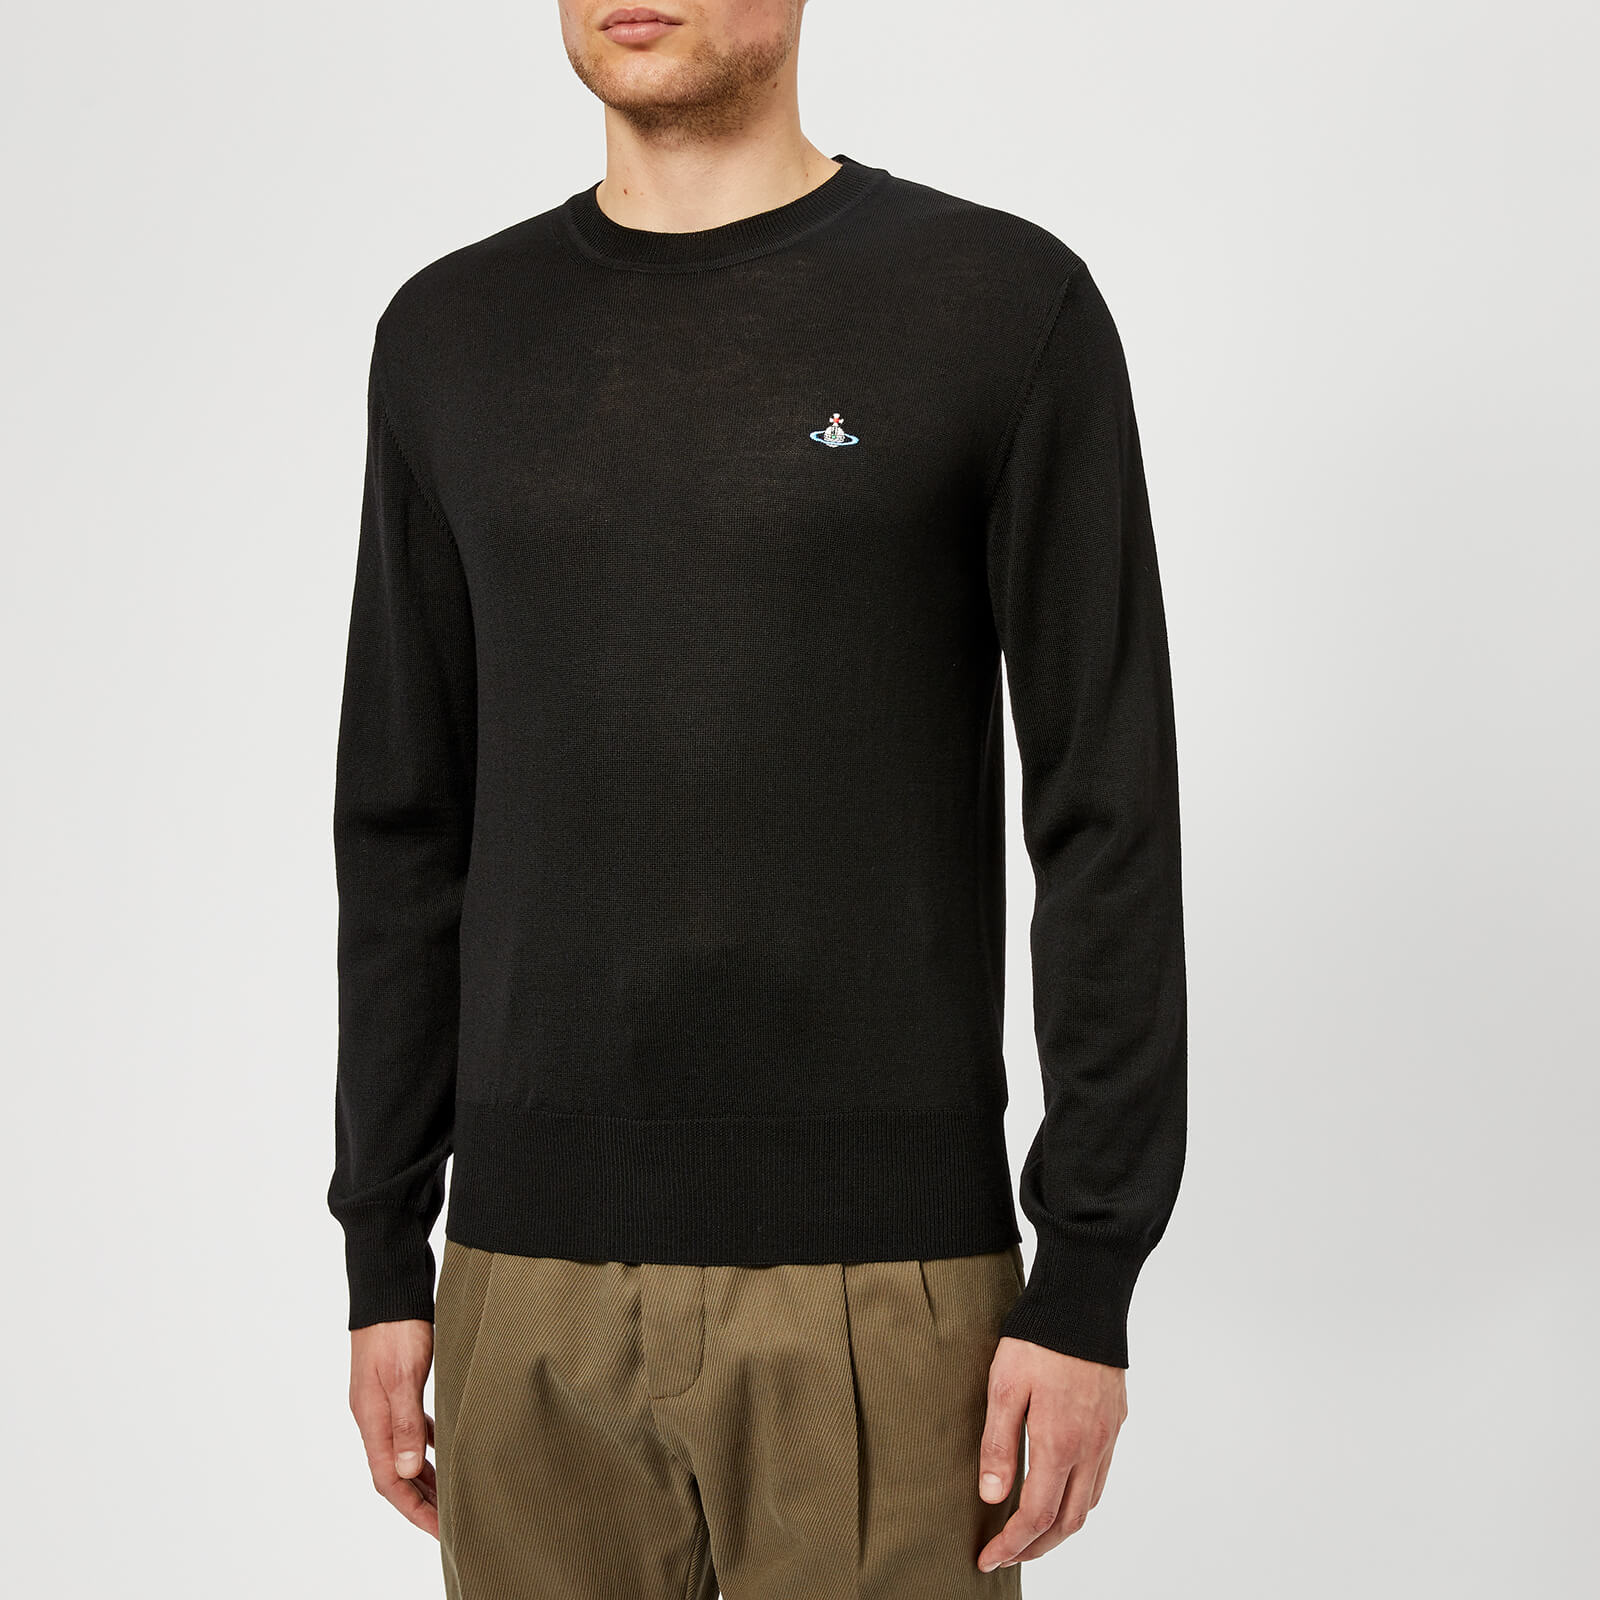 cf488be46ac Vivienne Westwood Men's Classic Round Neck Knitted Jumper - Black